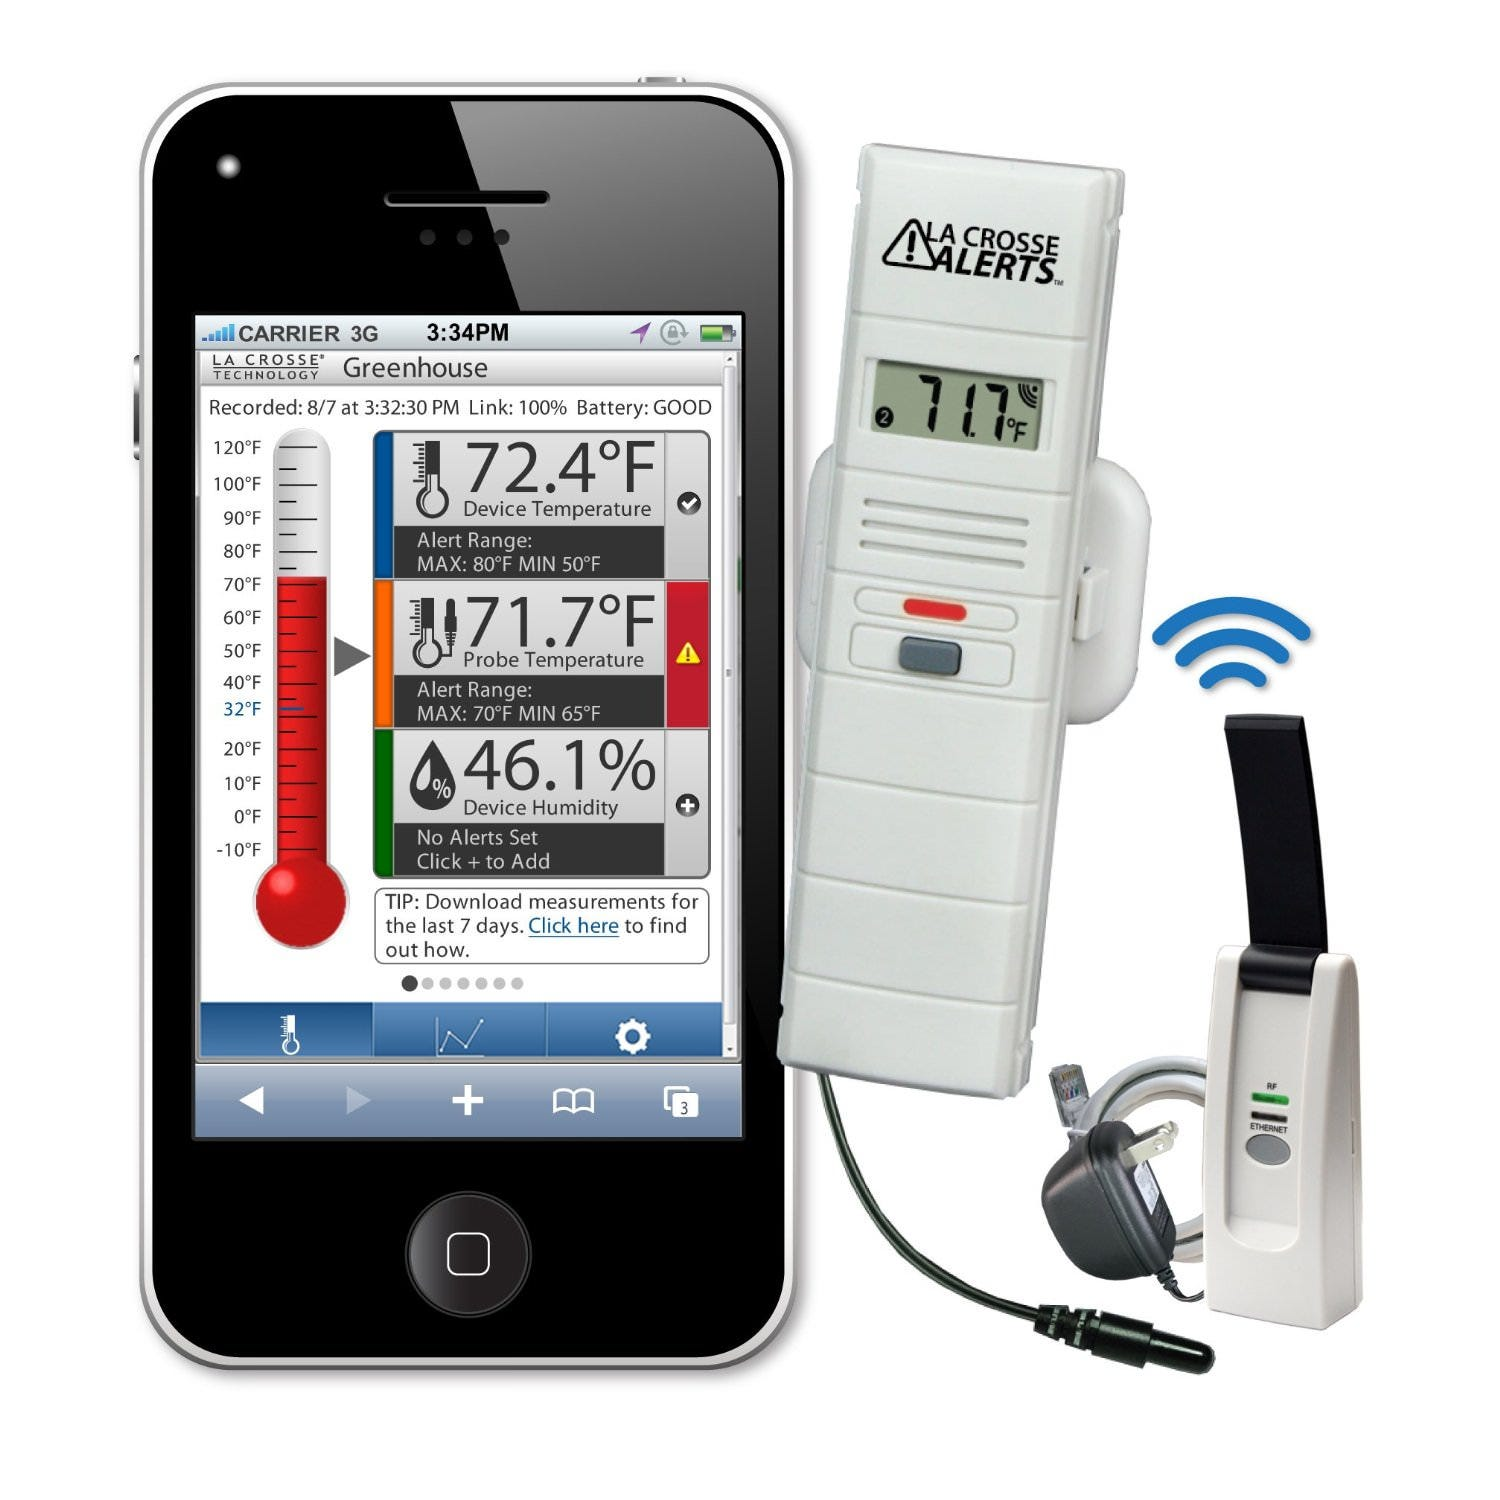 La Crosse Temperature & Humidity Wireless Alert System - Text & Email Function - New App-Based Model: 926-25101-WGB Remotely monitor sensors 24/7 using a web browser*. Perfect for...Backyard temperature and humidity; Plants, gardens and greenhouses; Refrigerators, freezers; Food storage; Sensitive electronics; Outdoor pets and livestock; and so much more Temperature and humidity measures: (1) Ambient air temperature; (2) Ambient humidity; (3) Probe temperature Temperature range: -40°F to 140°F Includes: sensor, internet gateway with LAN cable & AC adapter, DRY probe Requires 2 AAA Alkaline batteries (not included) Protect people, pets, plants and valuables from dangerous temperatures and humidity with an affordable, easy to use remote monitor and alert system. La Crosse Alerts™ Temperature and Humidity Monitor by La Crosse Technology® sends custom text and e-mail alerts to notify you when the temperature or humidity exceeds your desired range, when the battery is low, or when the connection is lost. Low temperature alerts can help you prevent damage from frozen pipes, freezer burn, and protect sensitive plants and animals from harsh conditions. High alerts can help you prevent mold and mildew, prevent food spoilage, and protect plants, animals and electronics from overheating. La Crosse Alerts is your home's homepage: Use the online control panel for 24/7 monitoring anywhere with Internet. View current readings or a 7 day history graph. Change alert settings anytime or download the measurement log. You can also view current air temperature, relative humidity and probe temperature readings on the sensor's LCD. Monitor the temperature of wet or dry environments with a separate probe. Add up to 5 sensors for other areas within a 200 Ft wireless range. There are a wide variety of applications. Monitor: Backyard temperature and humidity, plants and gardens, pets or livestock, refrigerators and freezers, food storage, terrariums, books, documents and photos, basements, garages, and attics computers and servers, office or rentals, HVAC, wine storage, home brewing and humidors.